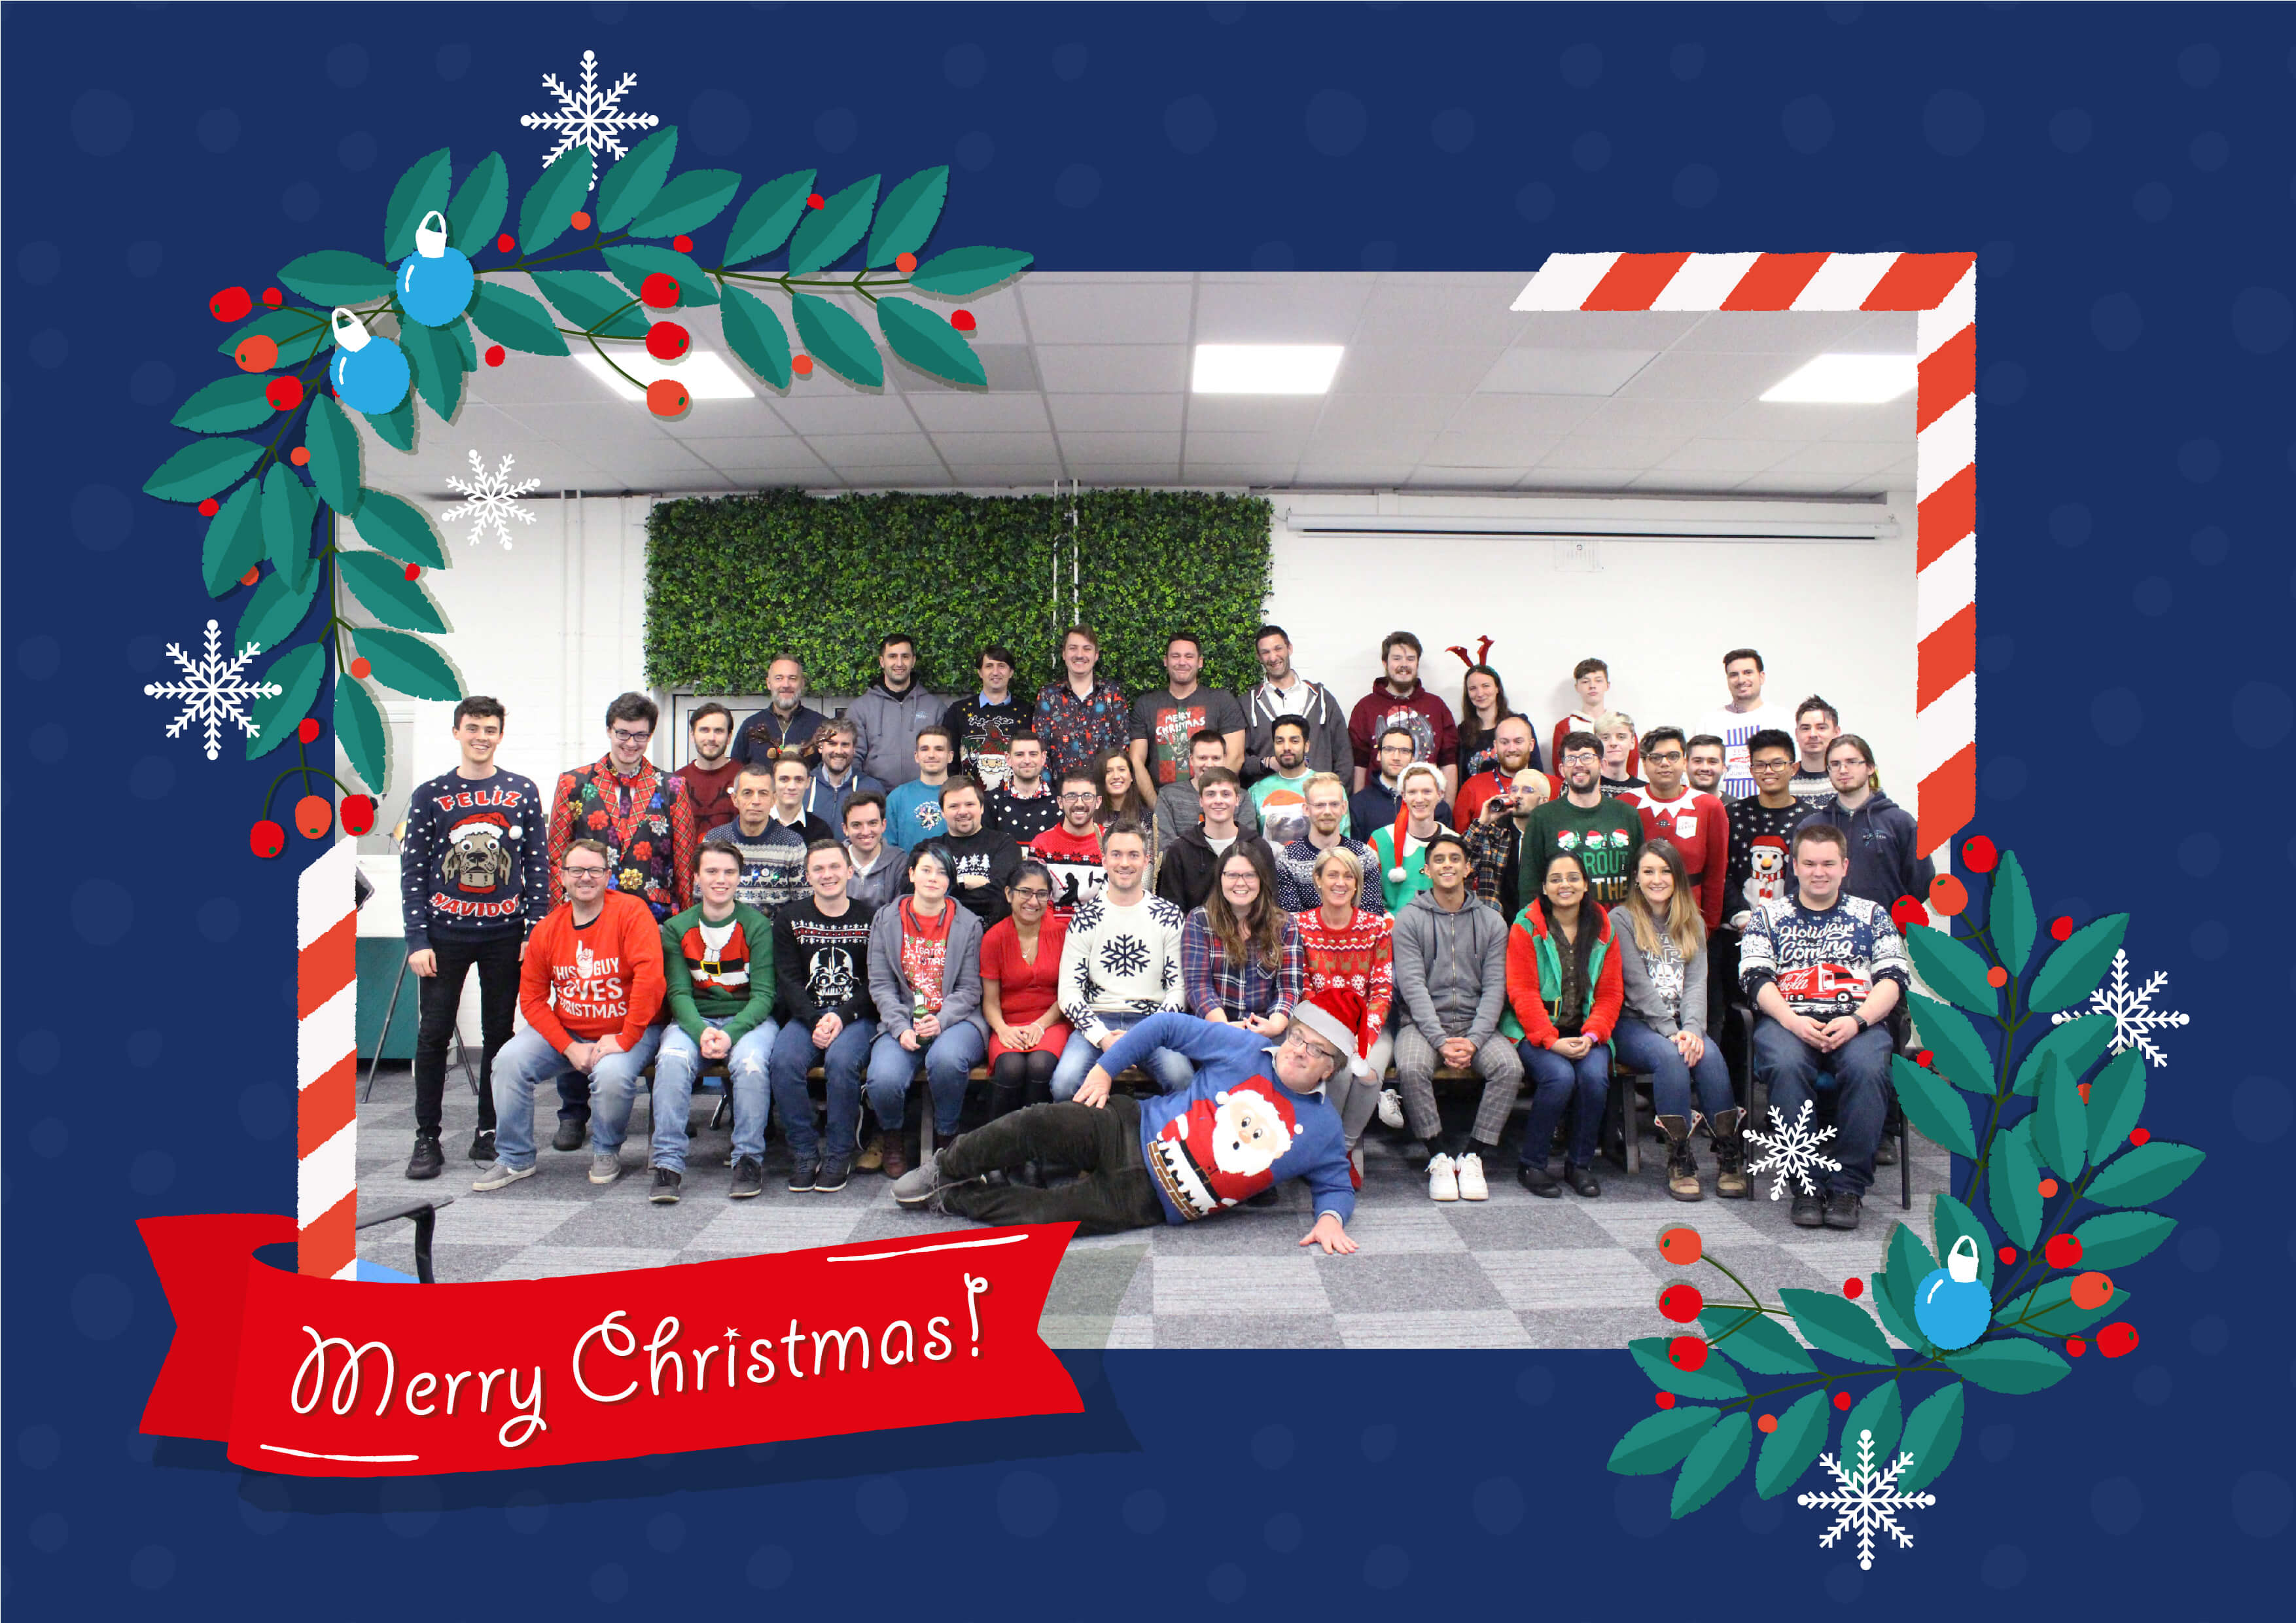 We'd like to take this opportunity to wish all of our customers, partners, staff and visitors all the best for this festive season. It's been an excellent year and we're excited to show you what will be coming up in 2020.